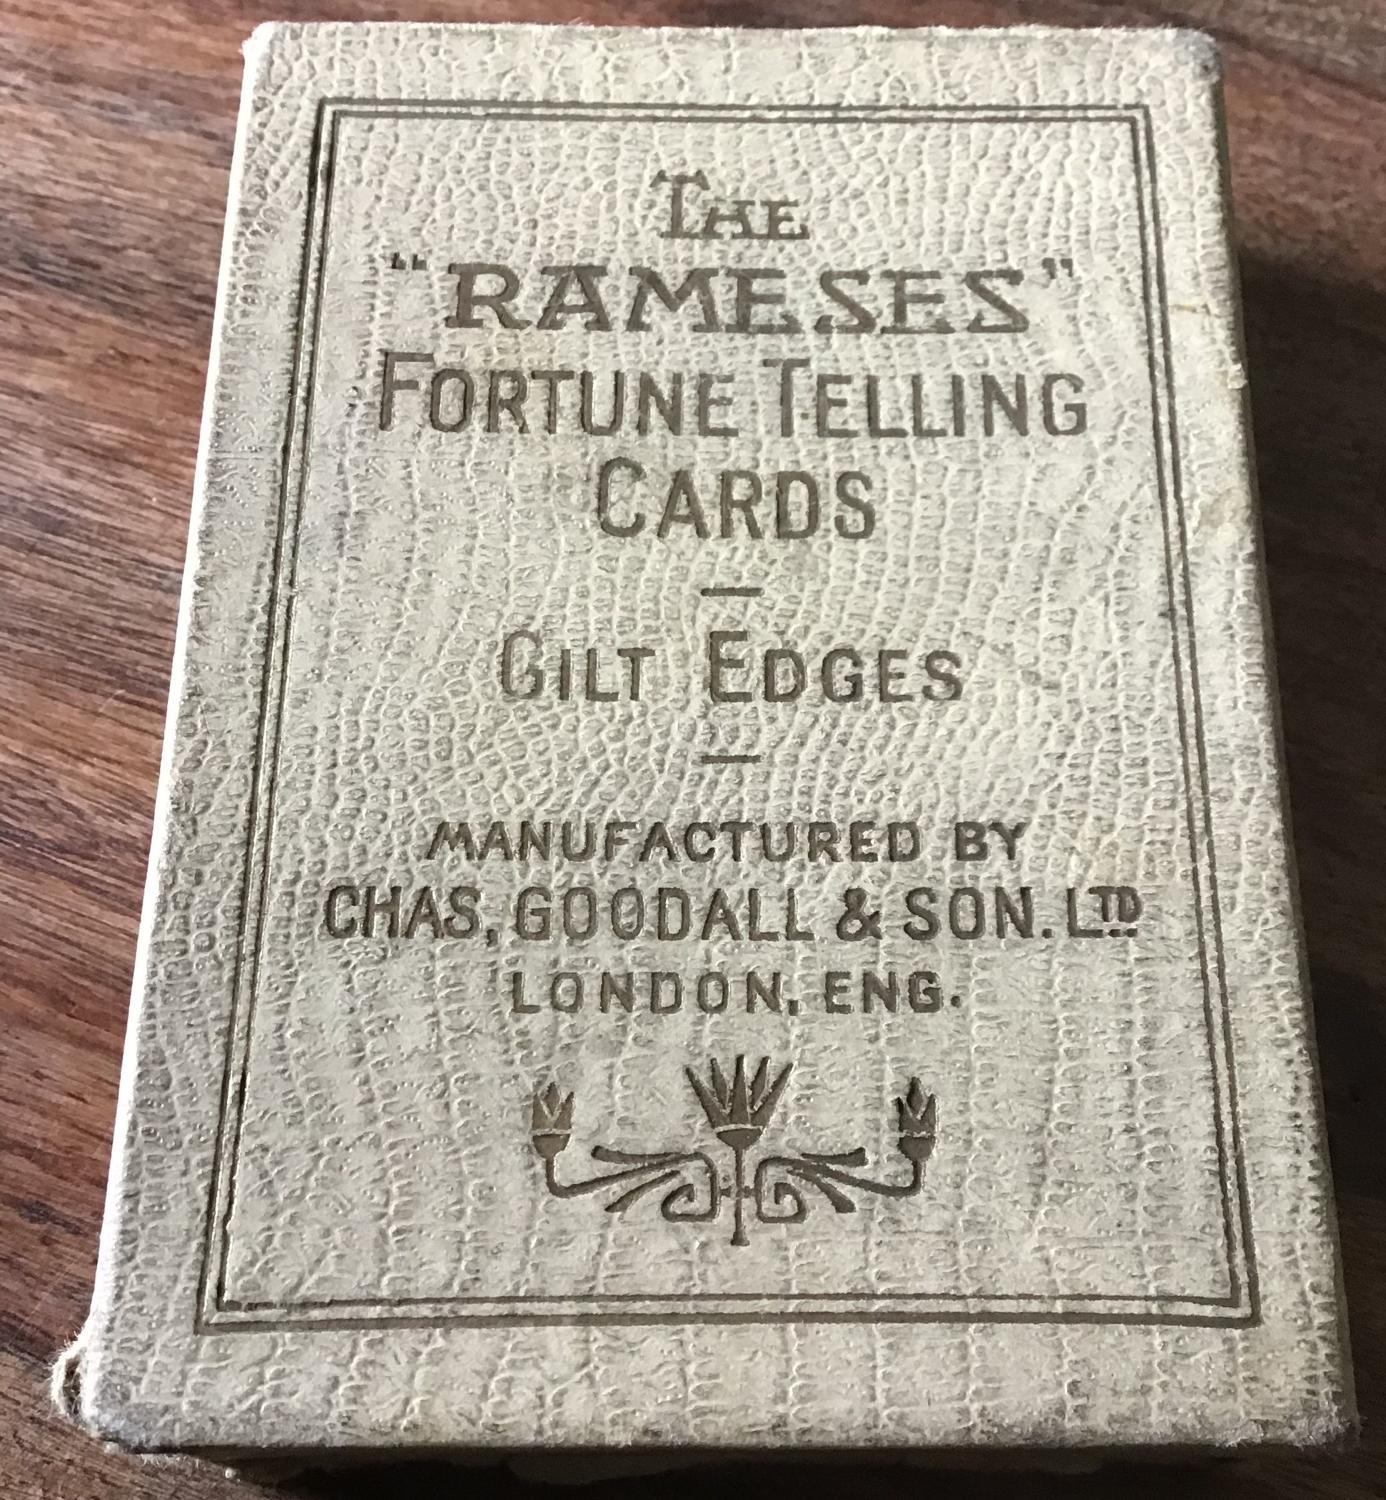 The Rameses Fortune Telling Cards in Miscellaneous